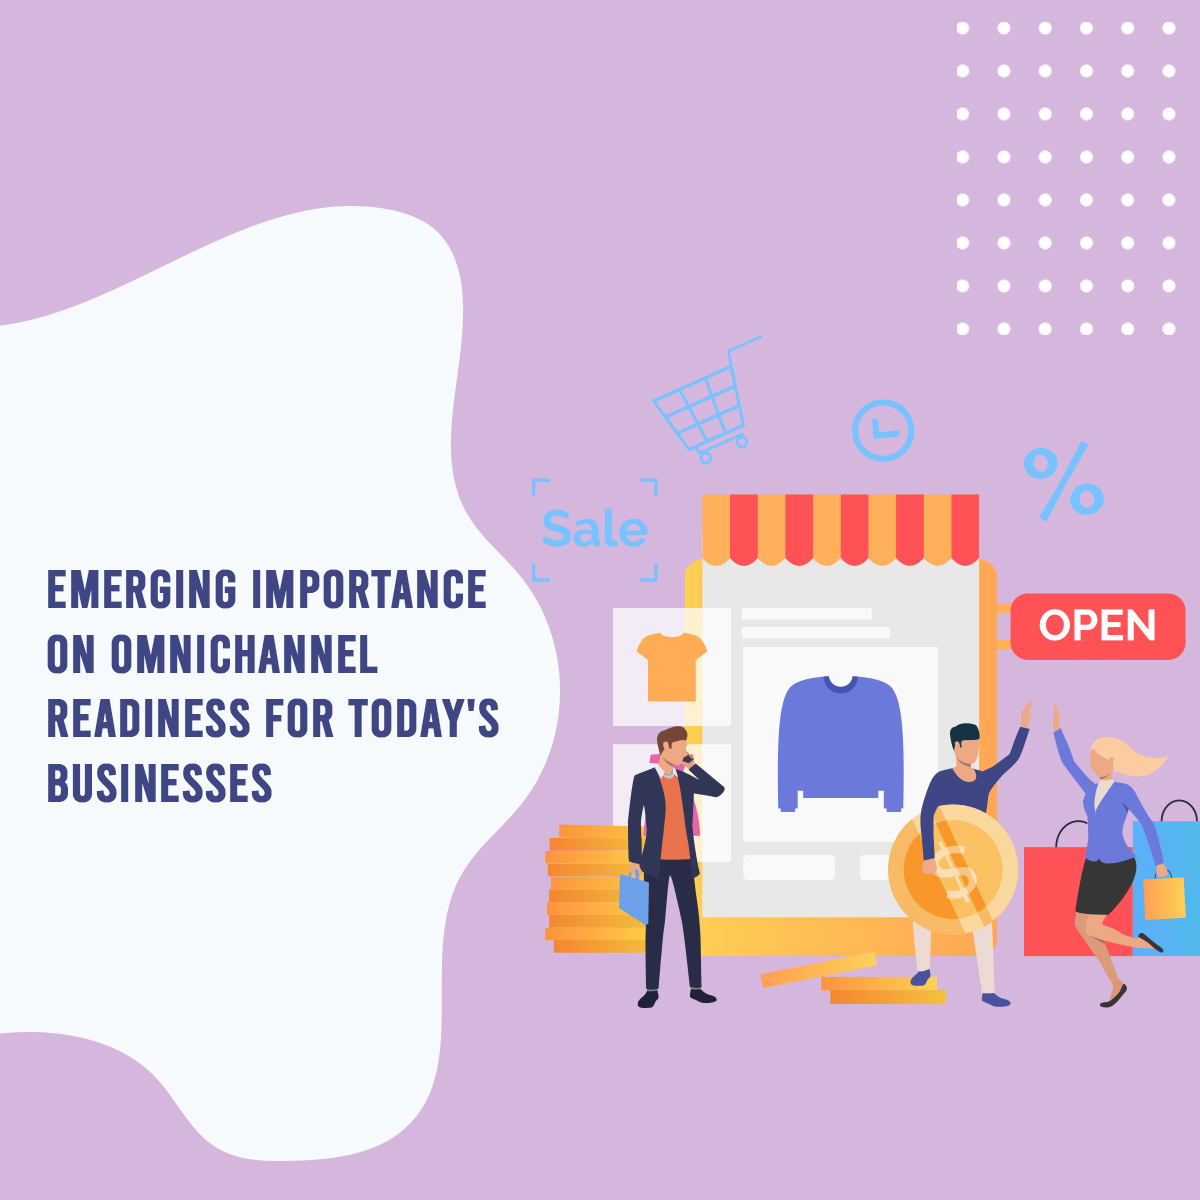 Emerging Importance on Omnichannel readiness for today's business